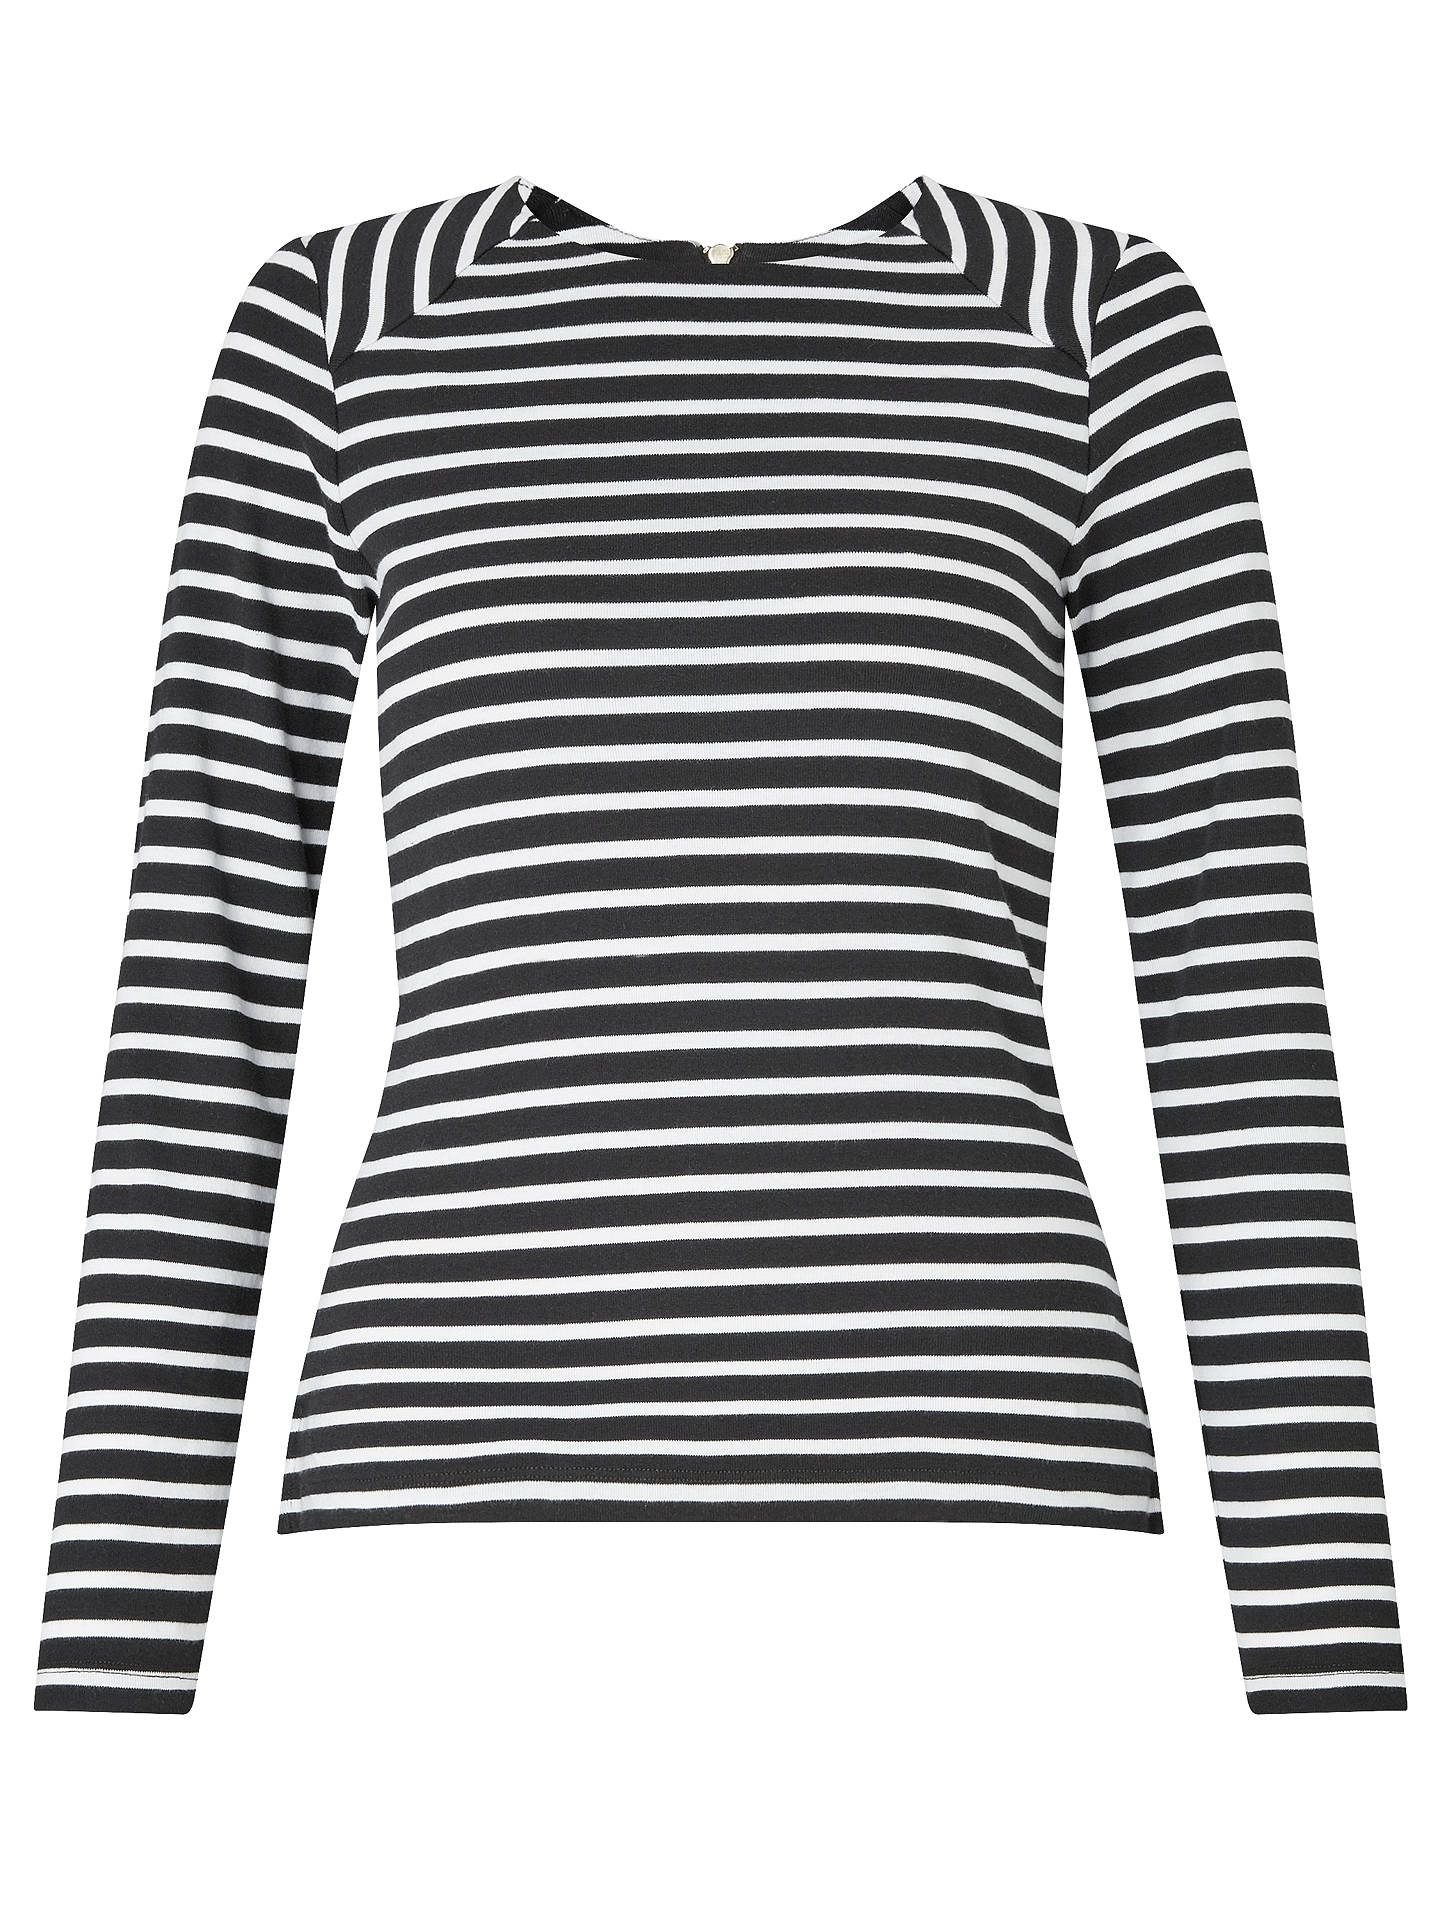 Buy Collection WEEKEND by John Lewis Breton Stripe Zip Back Top, Black/White, 8 Online at johnlewis.com